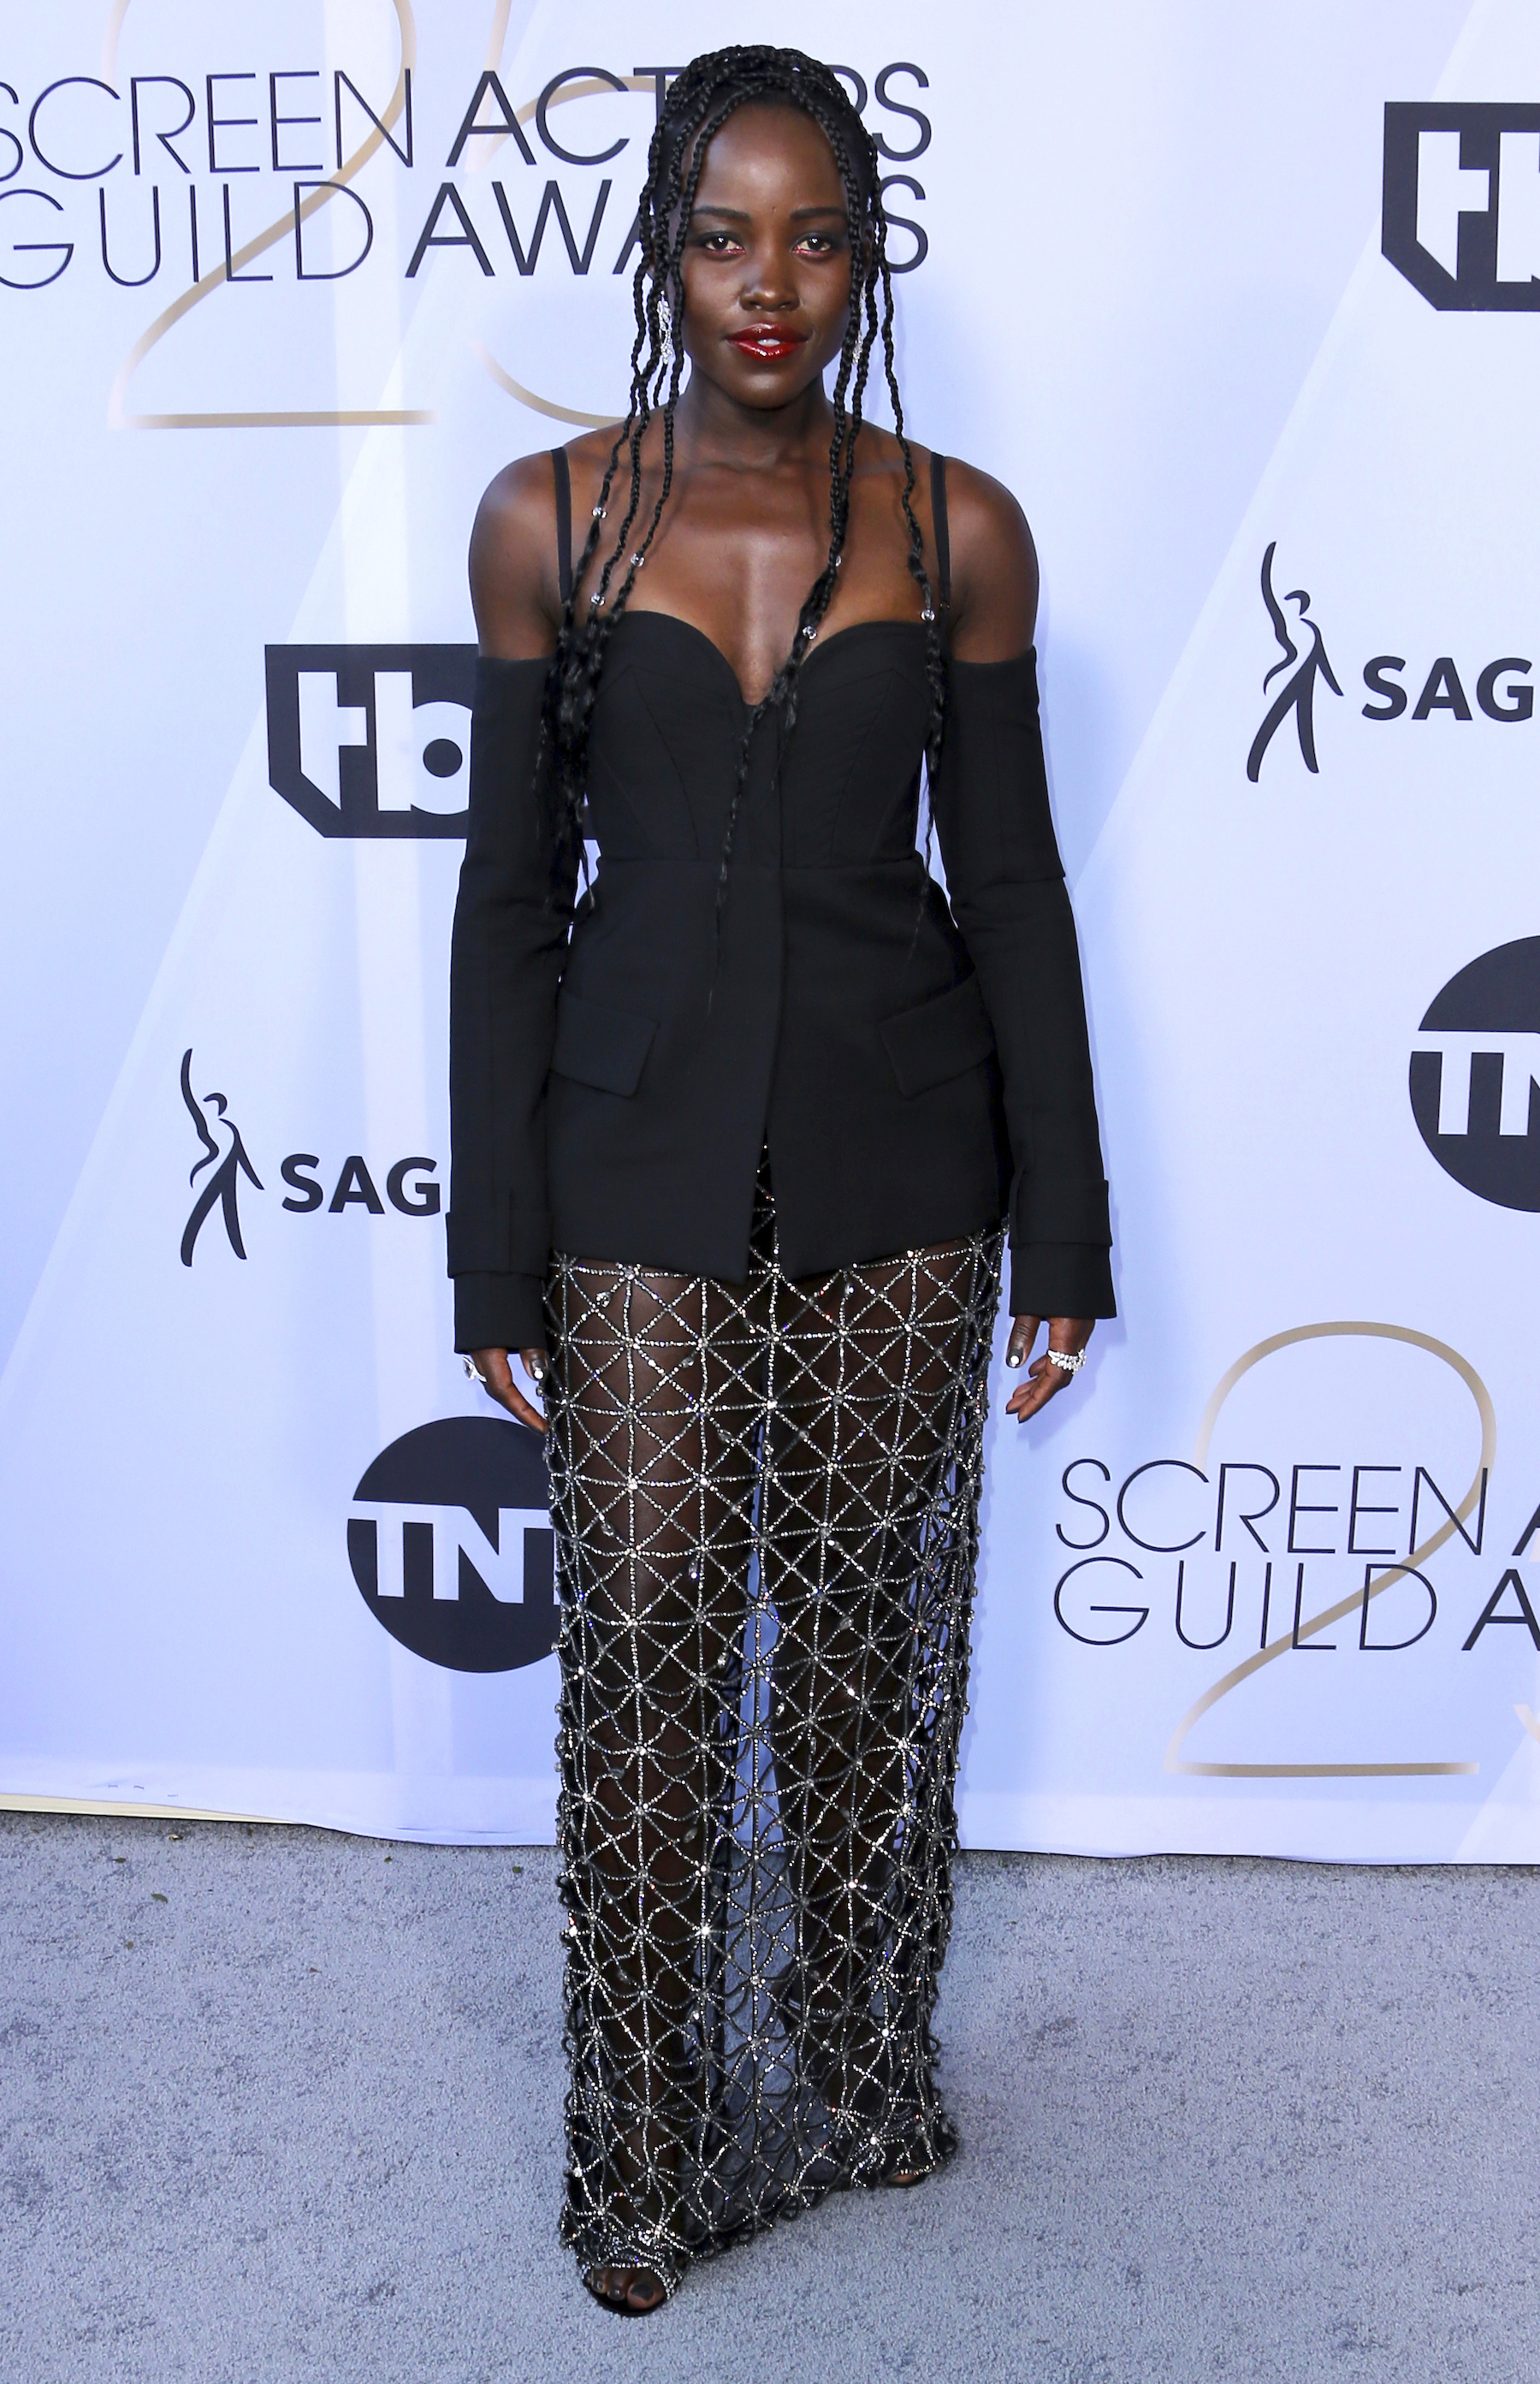 "<div class=""meta image-caption""><div class=""origin-logo origin-image ap""><span>AP</span></div><span class=""caption-text"">Lupita Nyong'o arrives at the 25th annual Screen Actors Guild Awards at the Shrine Auditorium & Expo Hall on Sunday, Jan. 27, 2019, in Los Angeles. (Willy Sanjuan/Invision/AP)</span></div>"